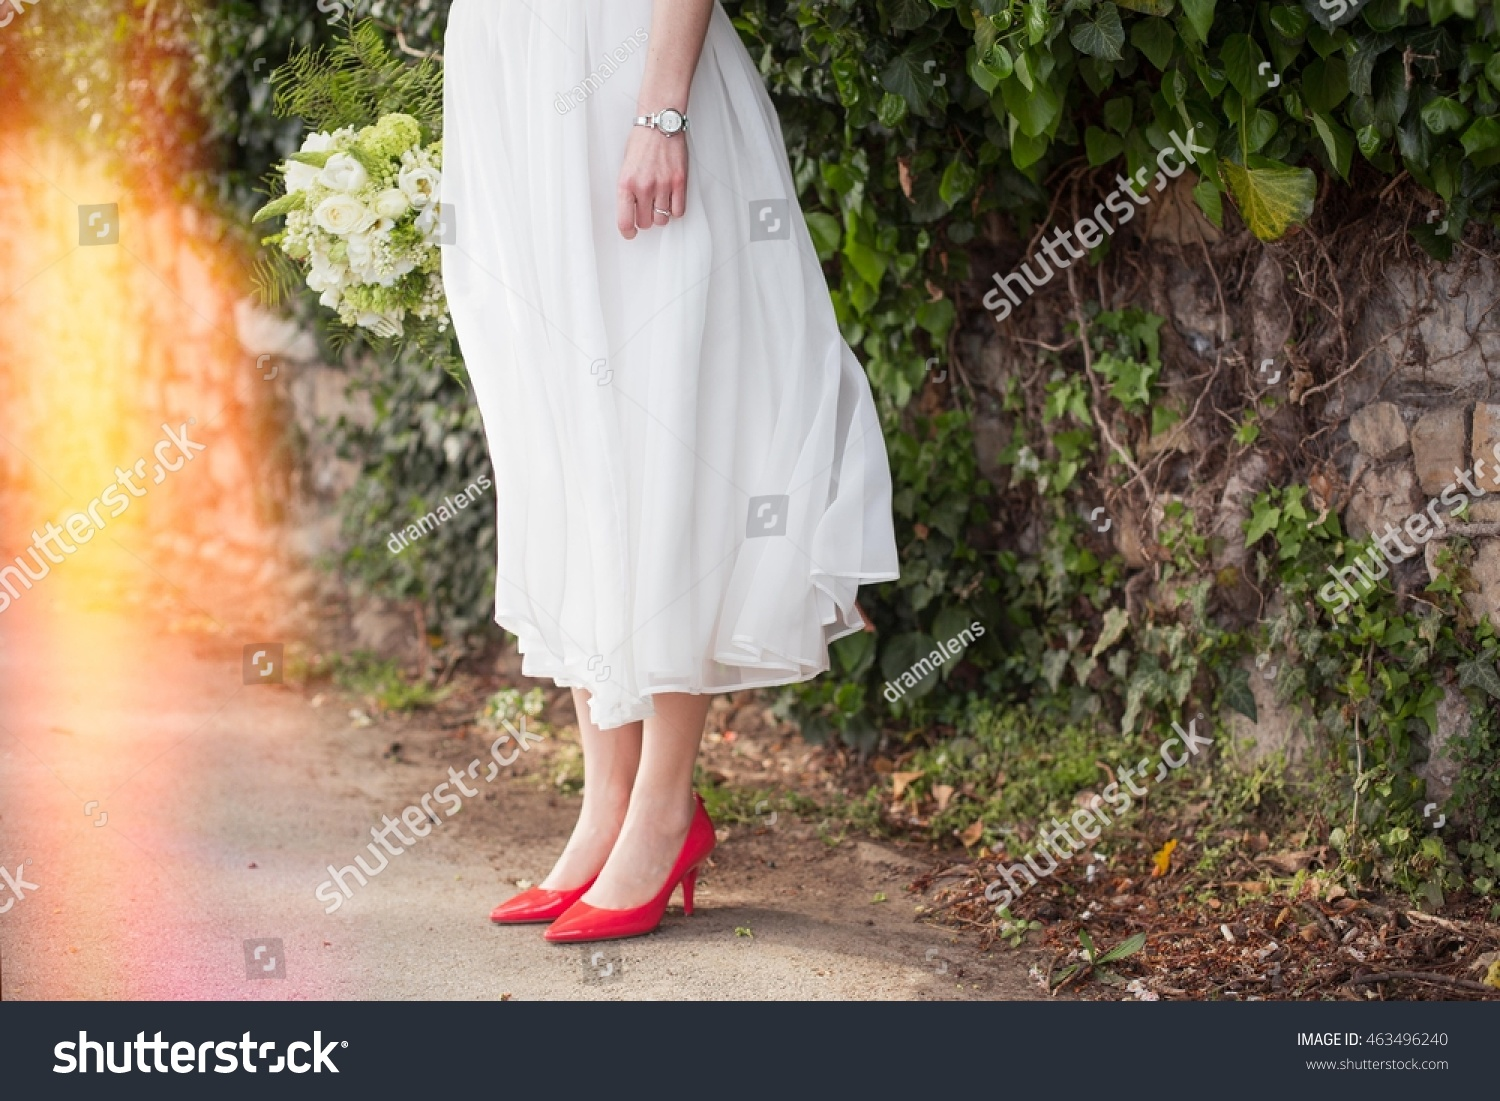 View Brides Feet Wearing Red Shoes